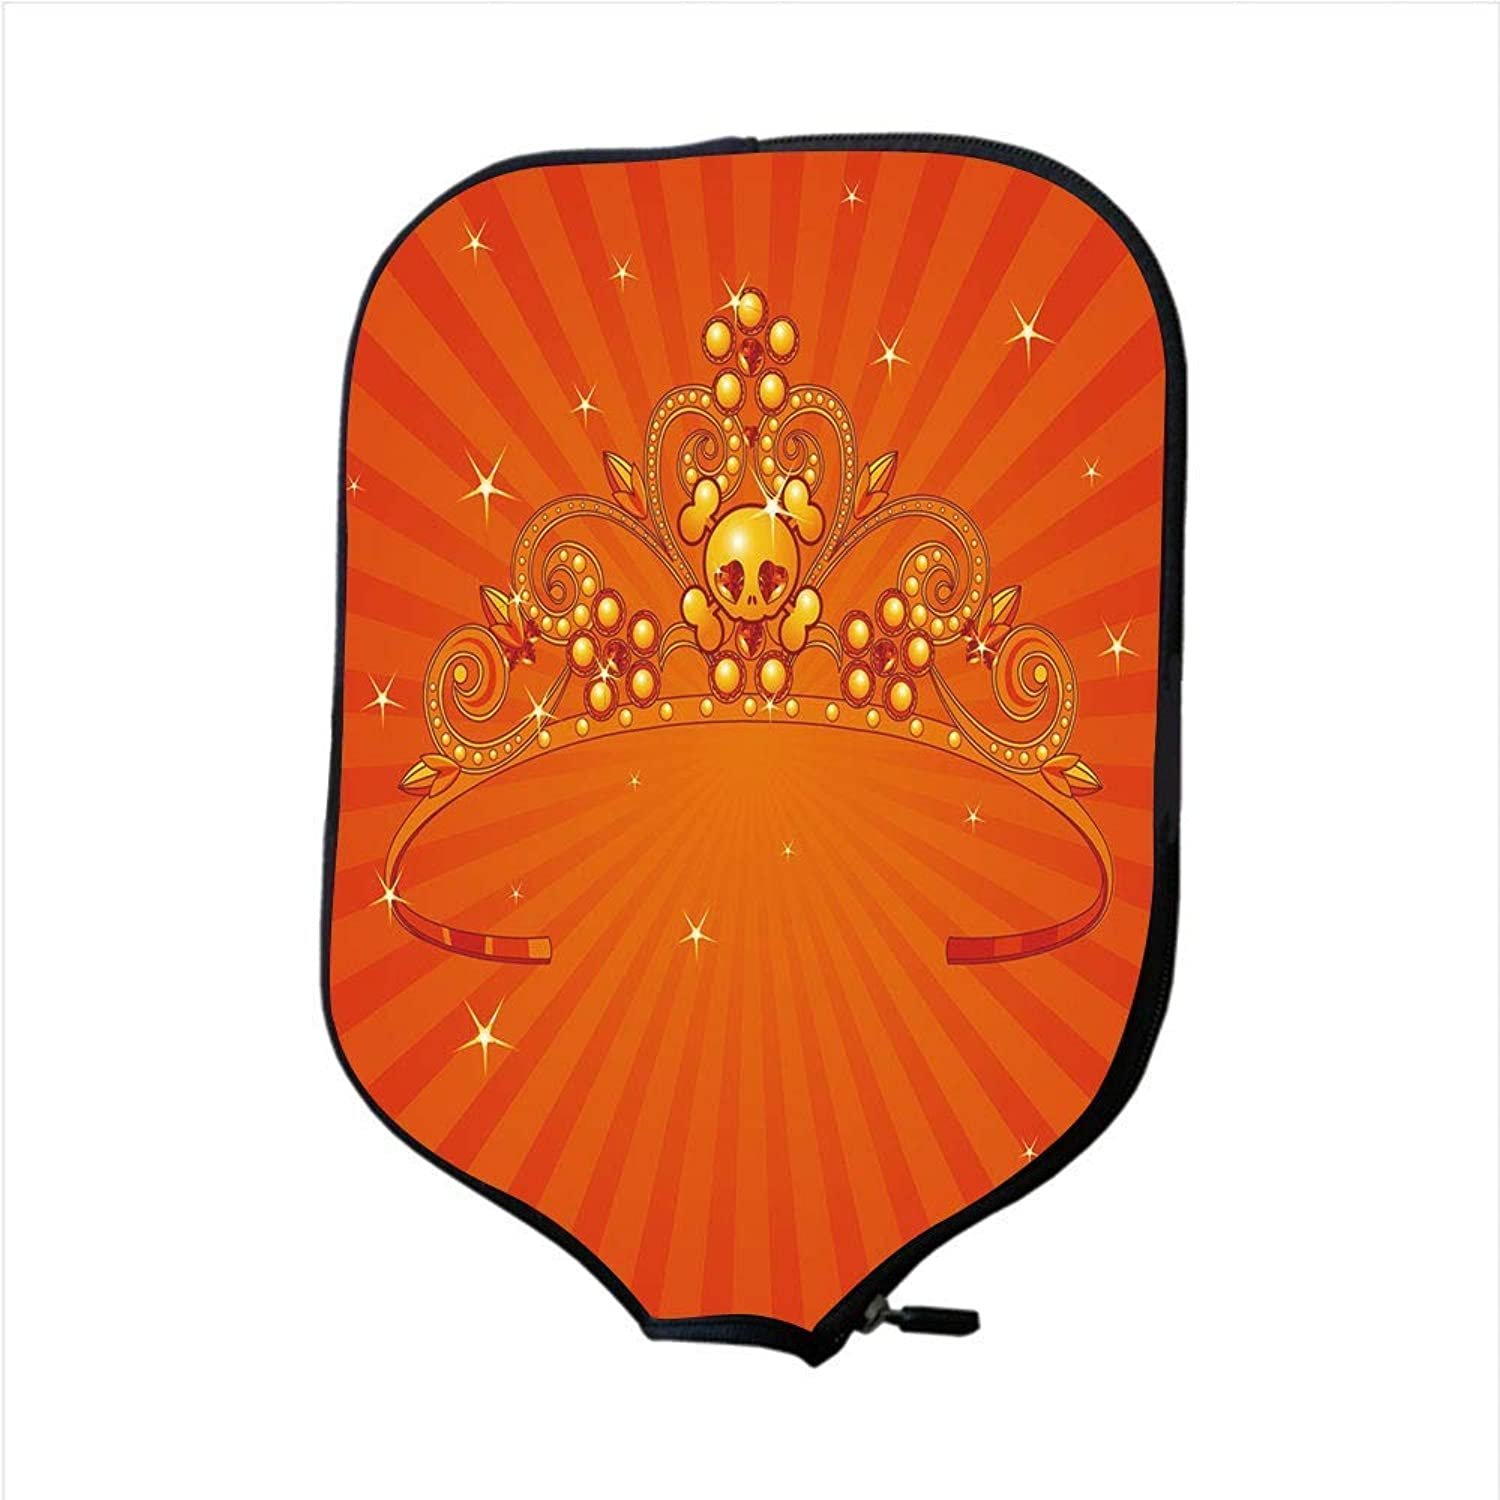 Fine Neoprene Pickleball Paddle Racket Cover Case,Queen,Fancy Halloween Princess Crown with Little Skull Daisies on Radial orange Backdrop Stars Decorative,orange,Fit for Most Rackets